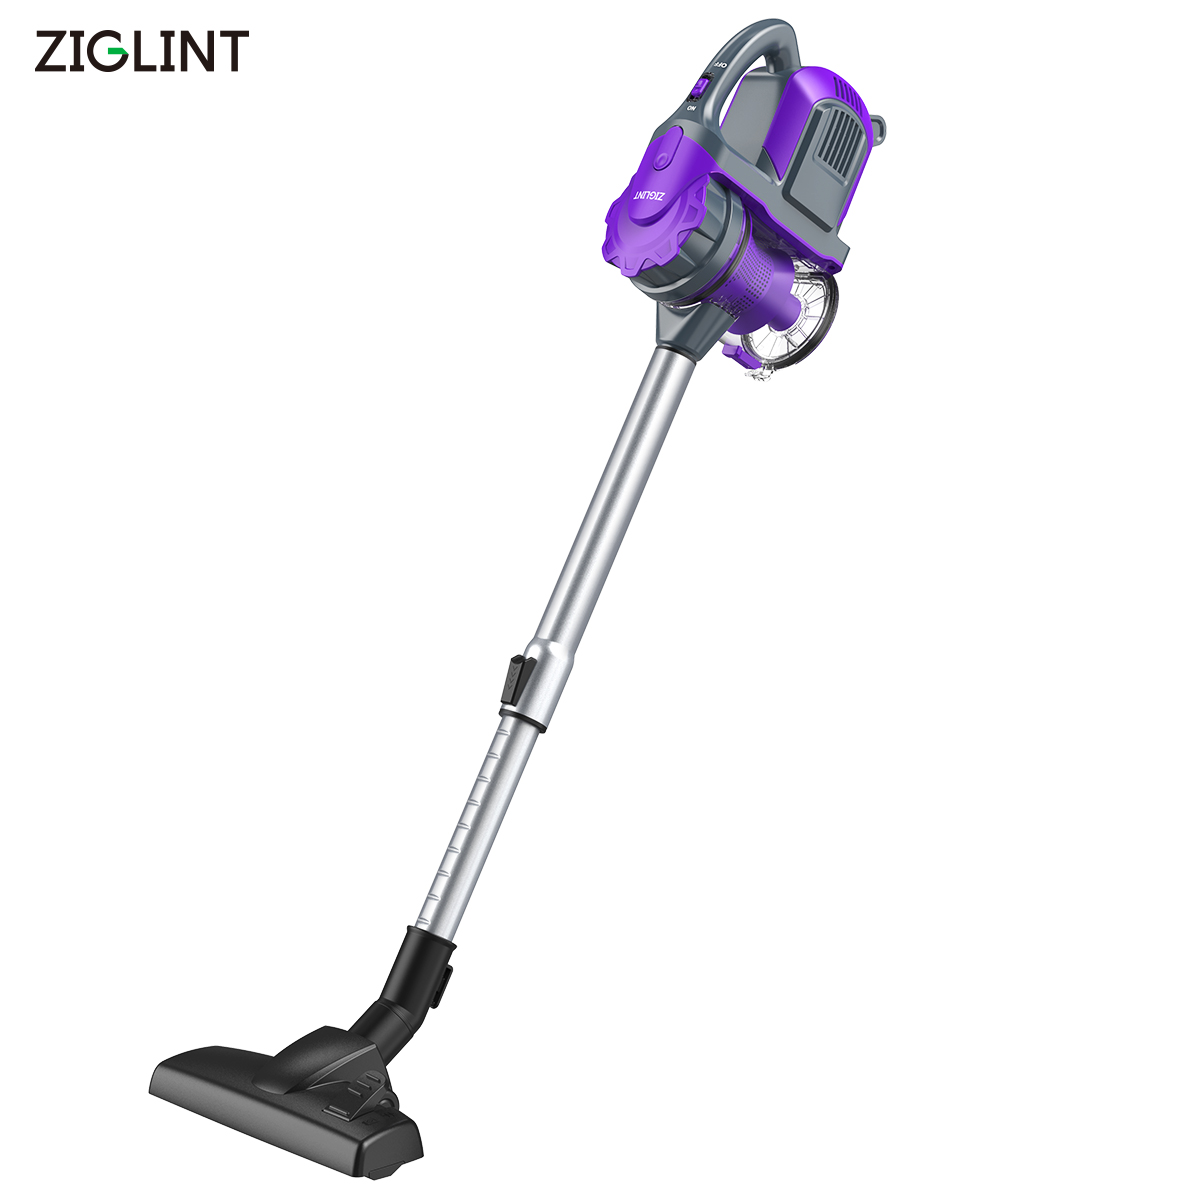 ziglint z3 multi function portable cordless rechargeable handheld vacuum cleaner 0 8l dust cup. Black Bedroom Furniture Sets. Home Design Ideas